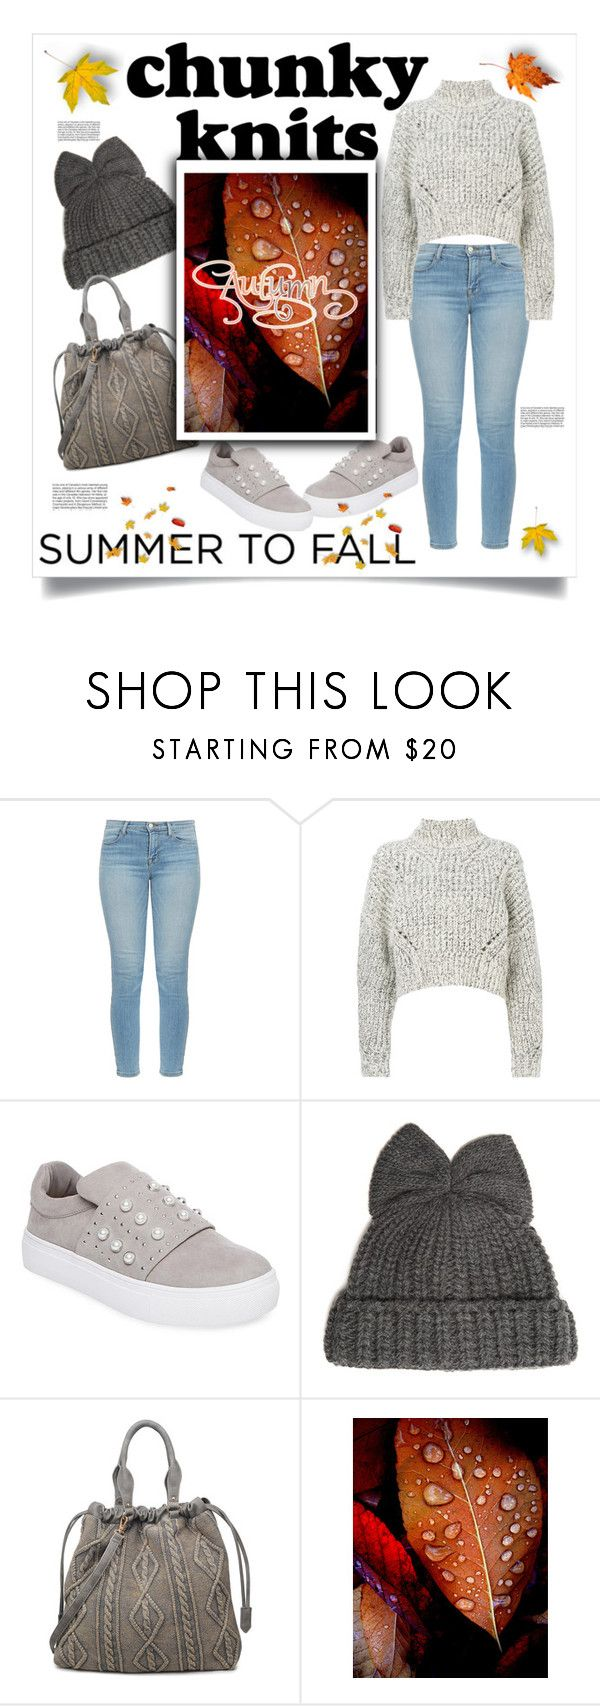 """""""get cozy: chunky knits"""" by jessicad110916 ❤ liked on Polyvore featuring J Brand, Isabel Marant, Steven by Steve Madden, Federica Moretti, Moda Luxe, sweaterweather, chunkyknit and AutumnIsComing"""